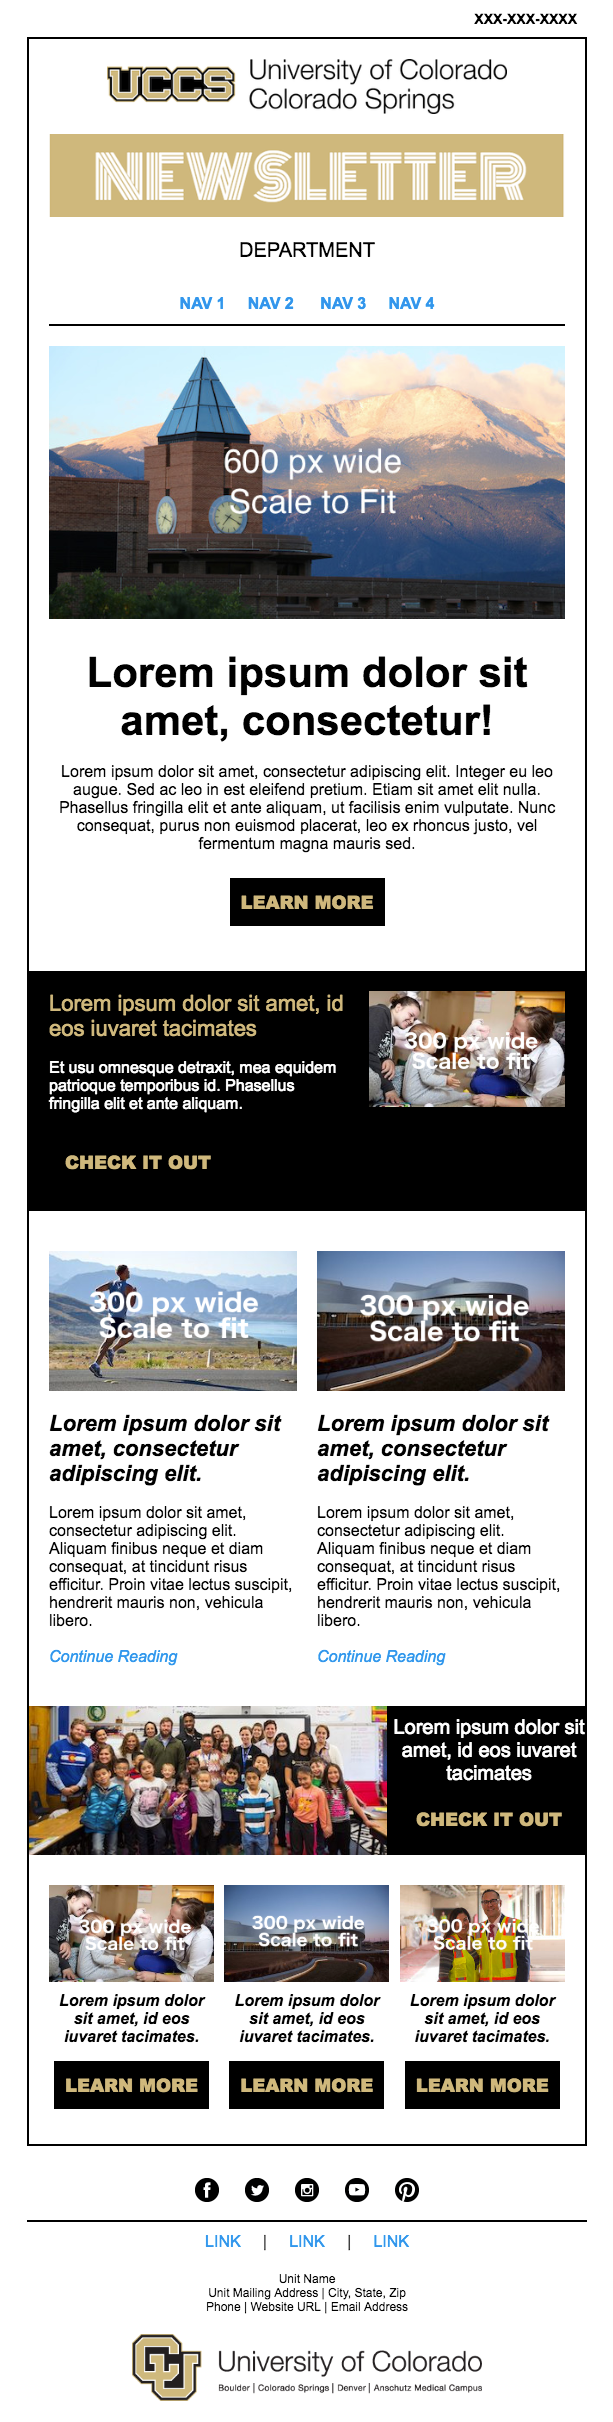 UCCS Template Set 2 (1 of 3)